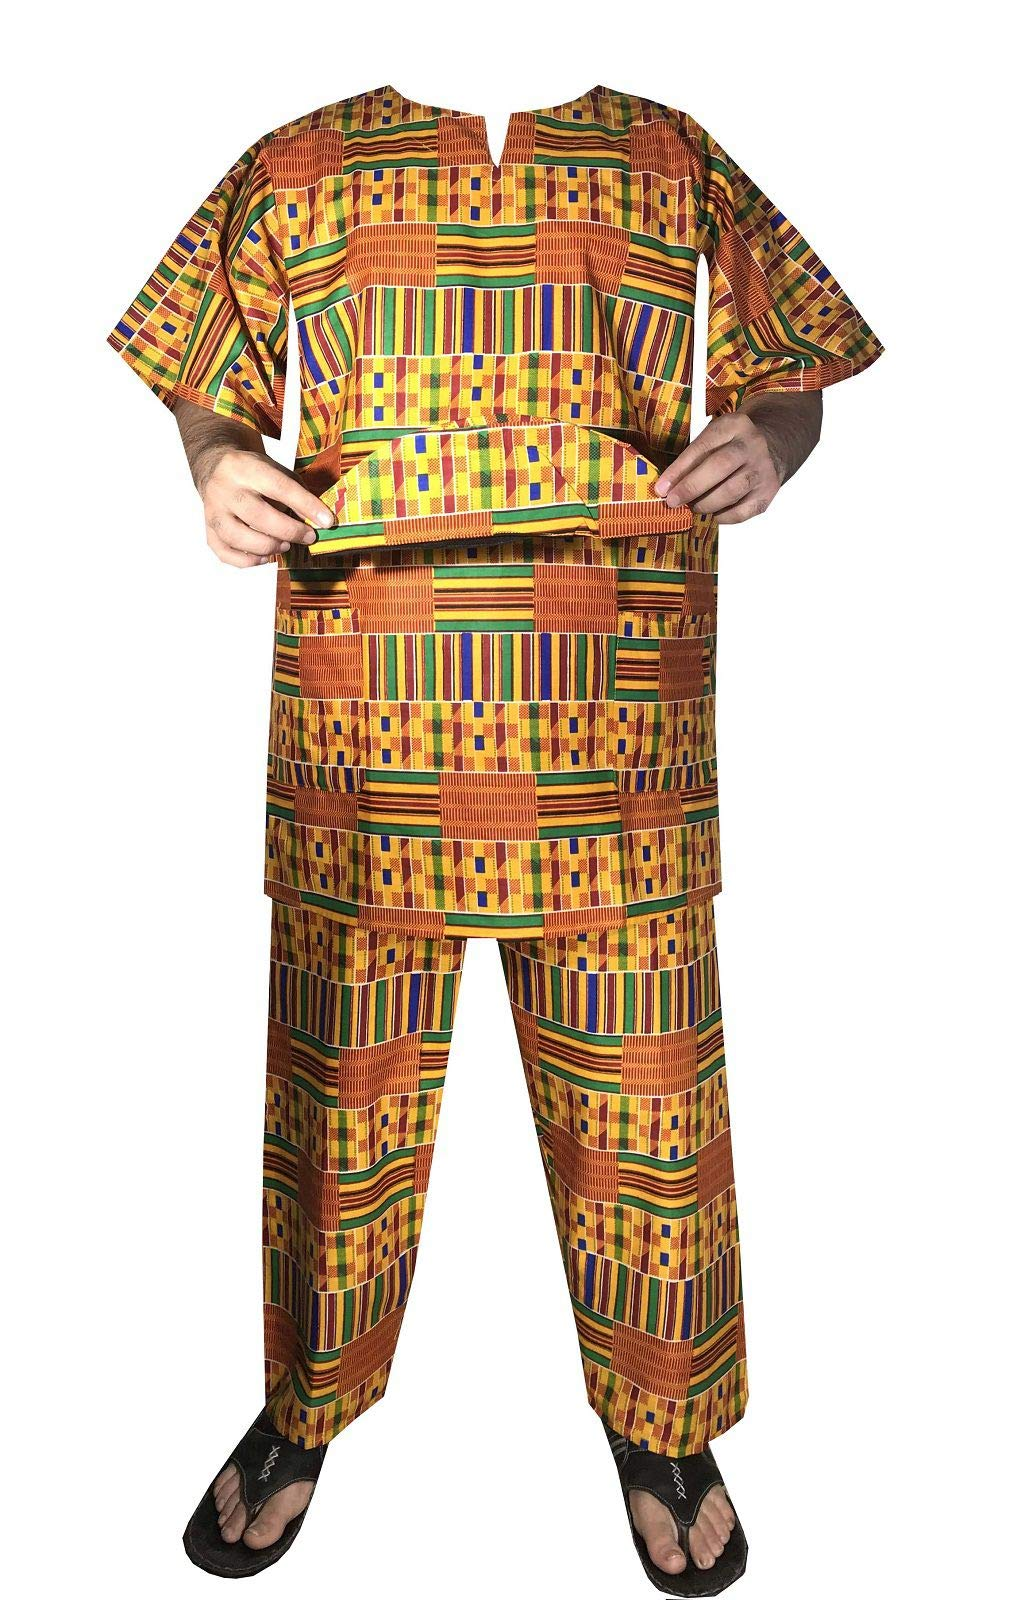 Decoraapparel African Men Black History Month Kent Traditional Dashiki Wedding Festival Church Party Pant Suit